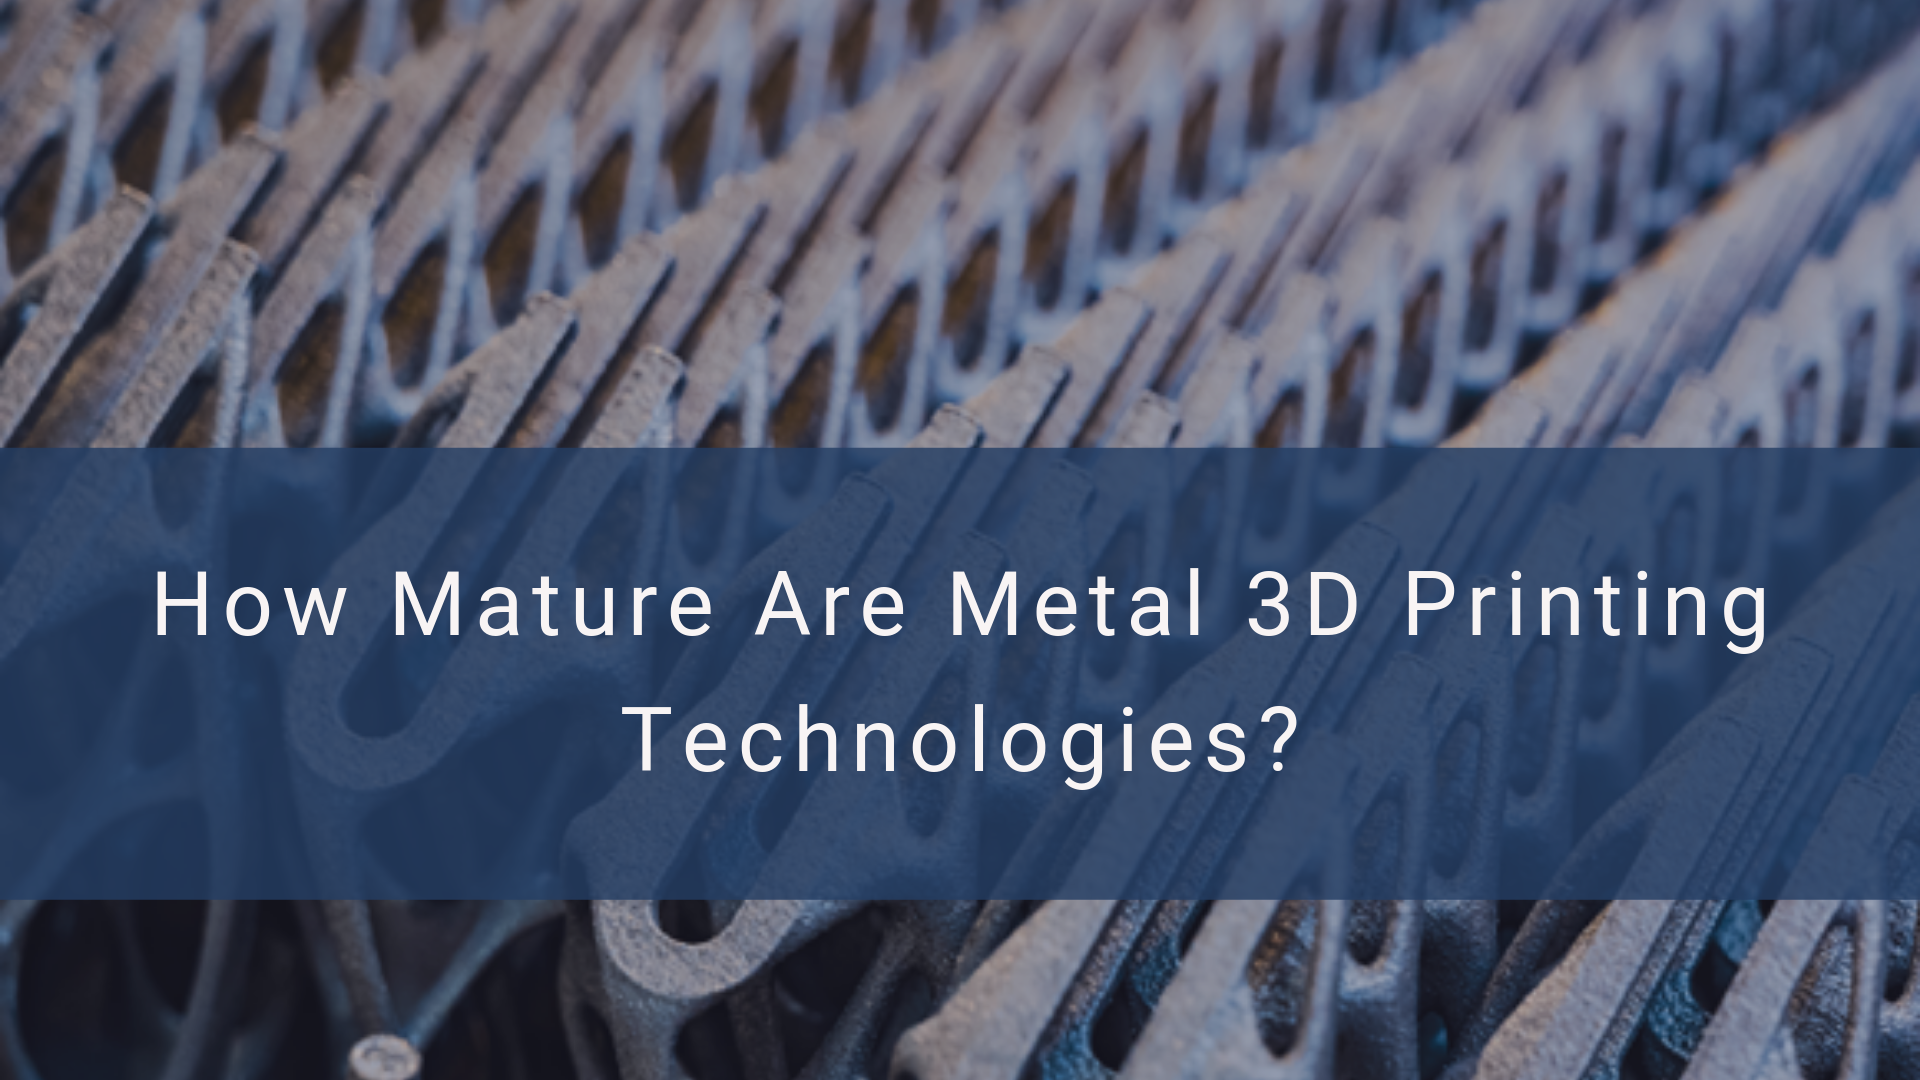 How Mature Are Metal 3D Printing Technologies?